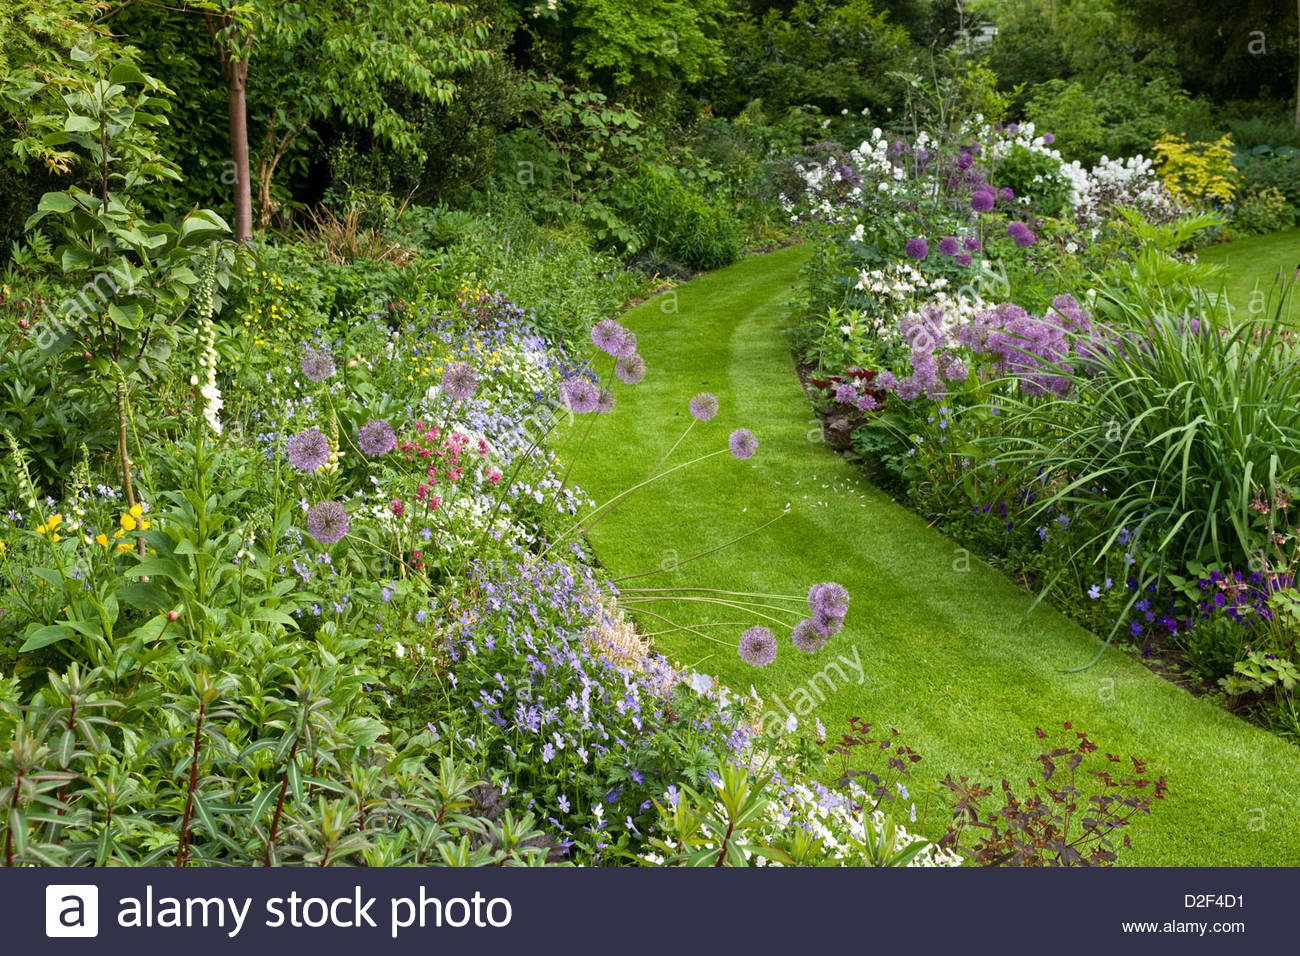 Curving lawn and borders in town garden. Planting includes Allium, Euphorbia, Digitalis, Magnolia, Viola, Aquilegia, - Stock Image